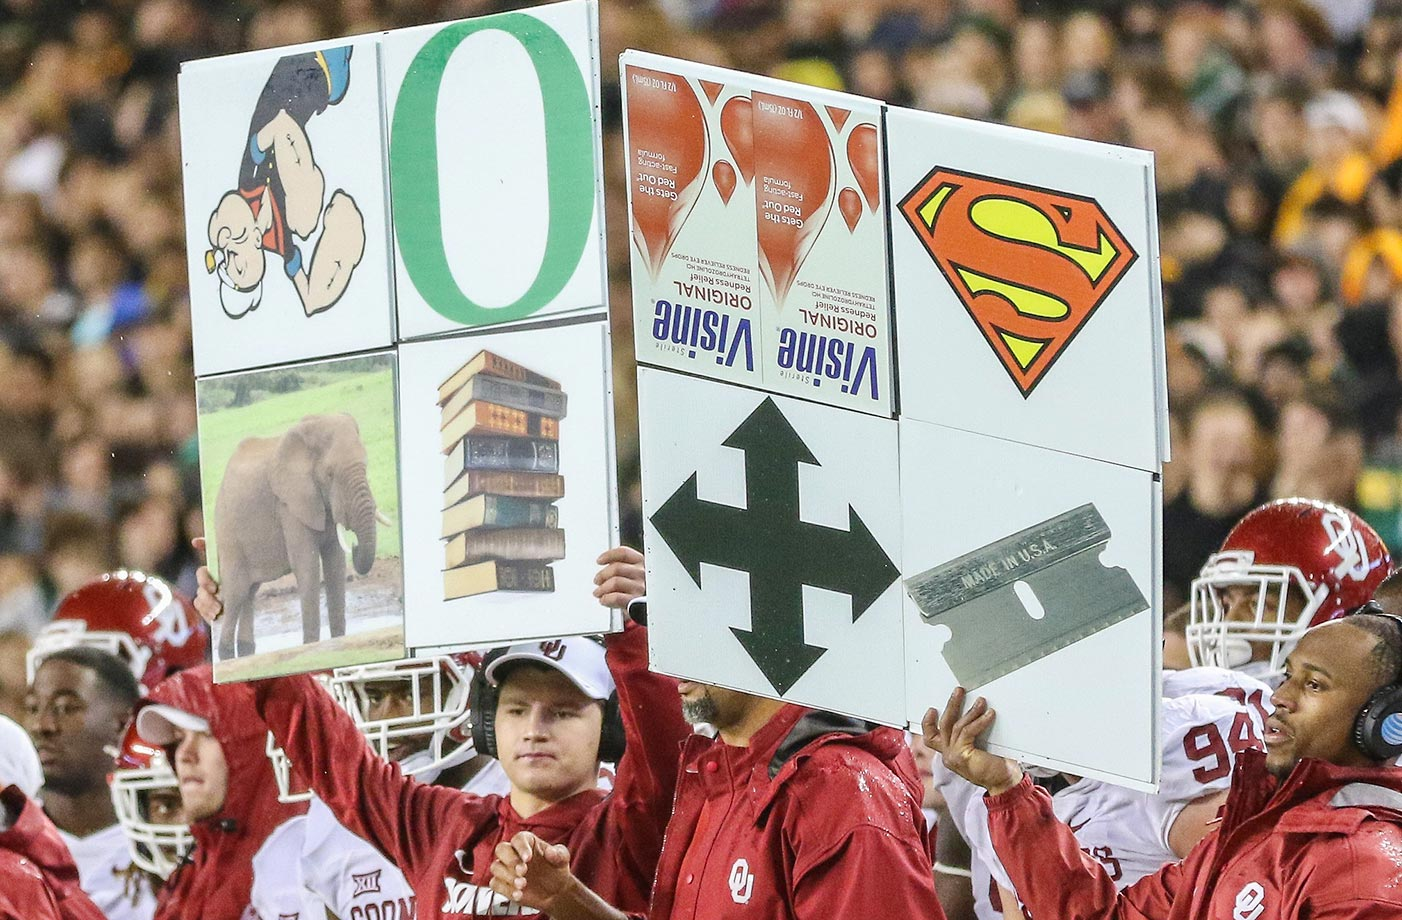 The Oklahoma Sooners send in signals using sign boards at a game against Baylor.